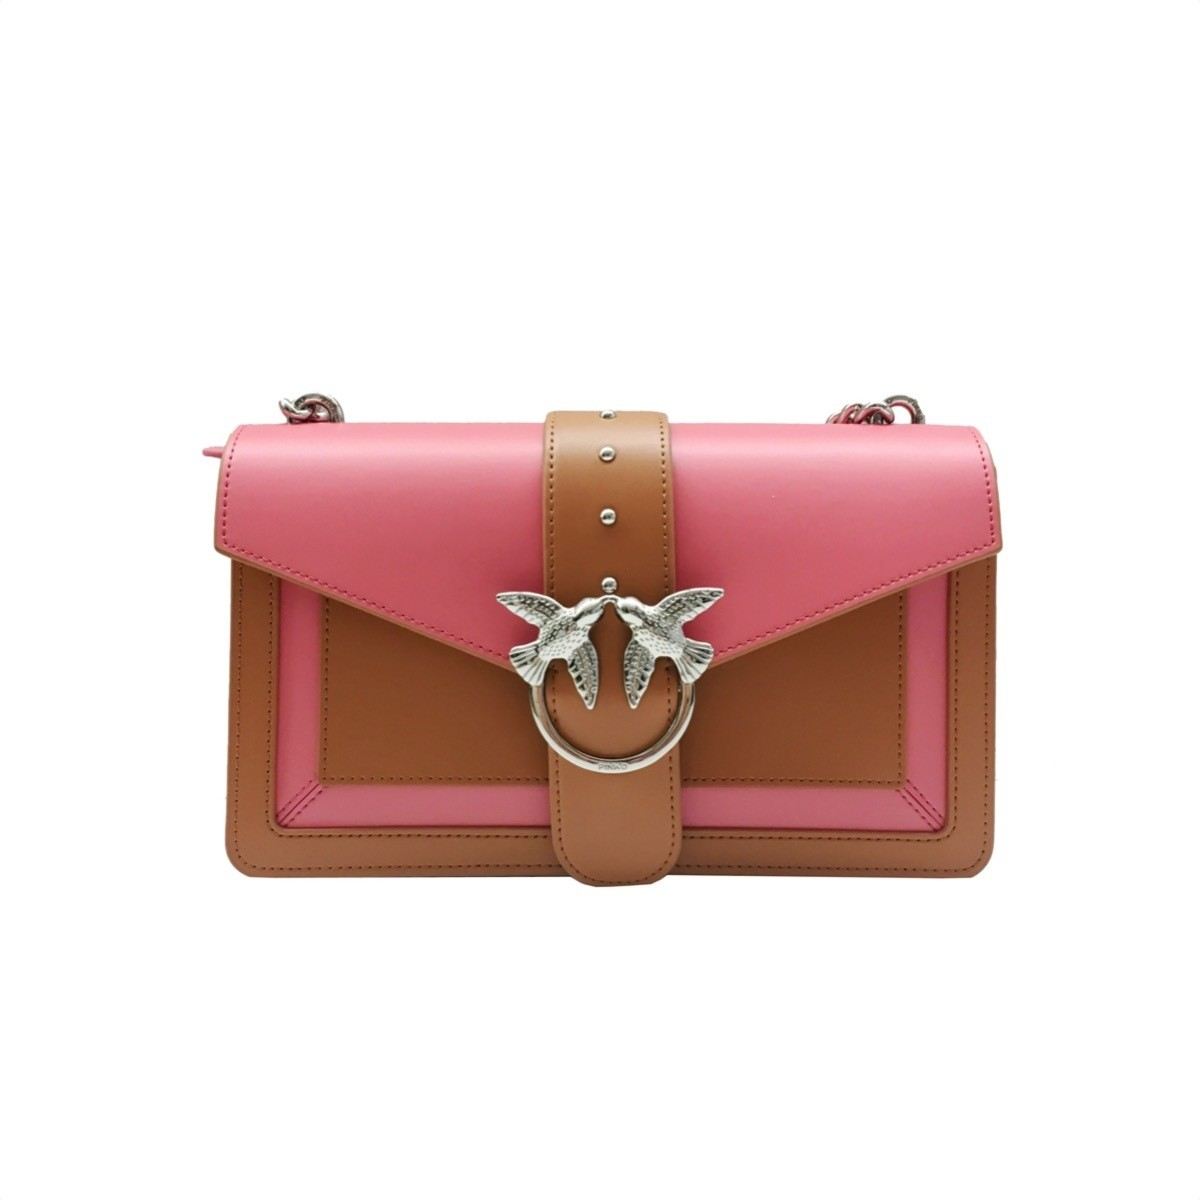 4a8043fdb0 PINKO - Love Bag Evolution in pelle bicolor - Cuoio/Corallo